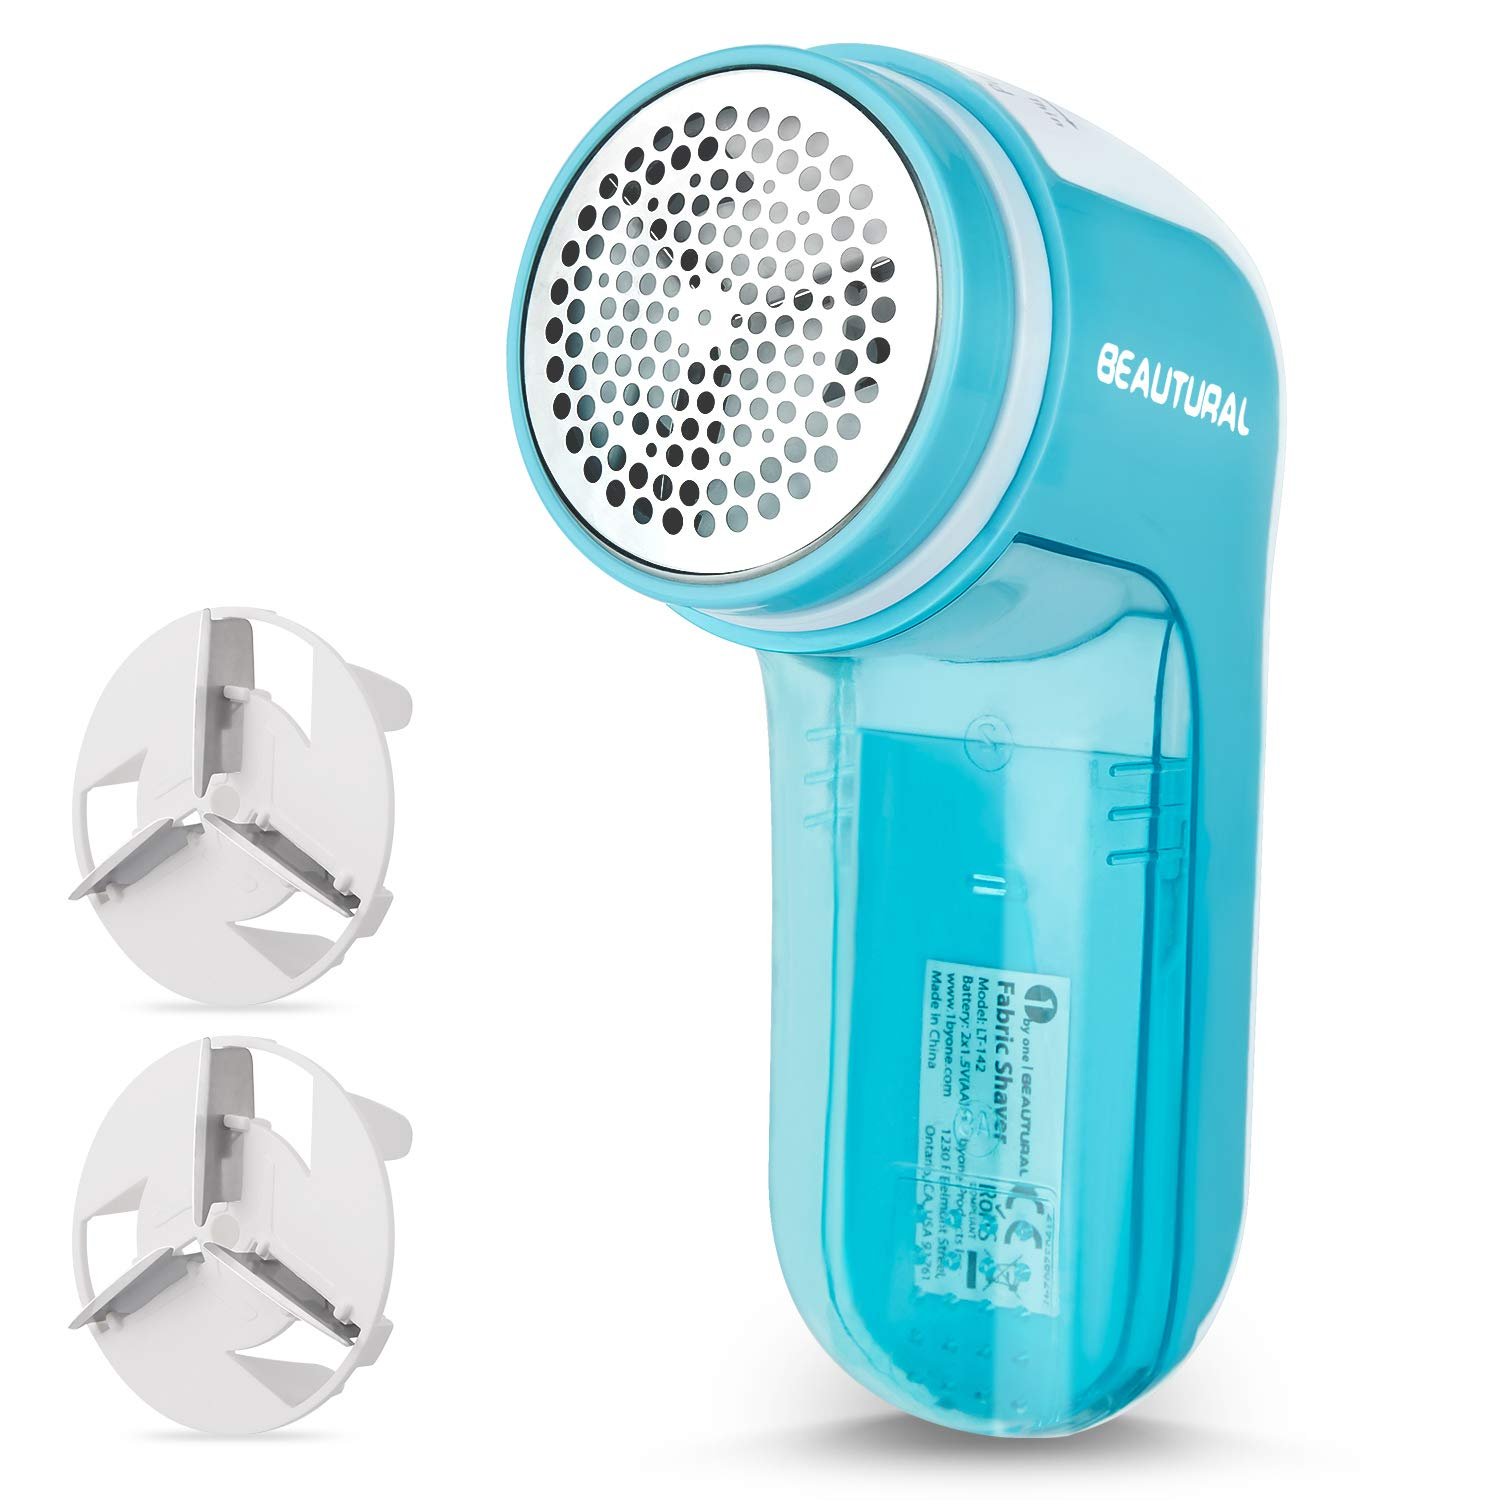 Beautural Fabric Shaver & Lint Remover Battery Operated